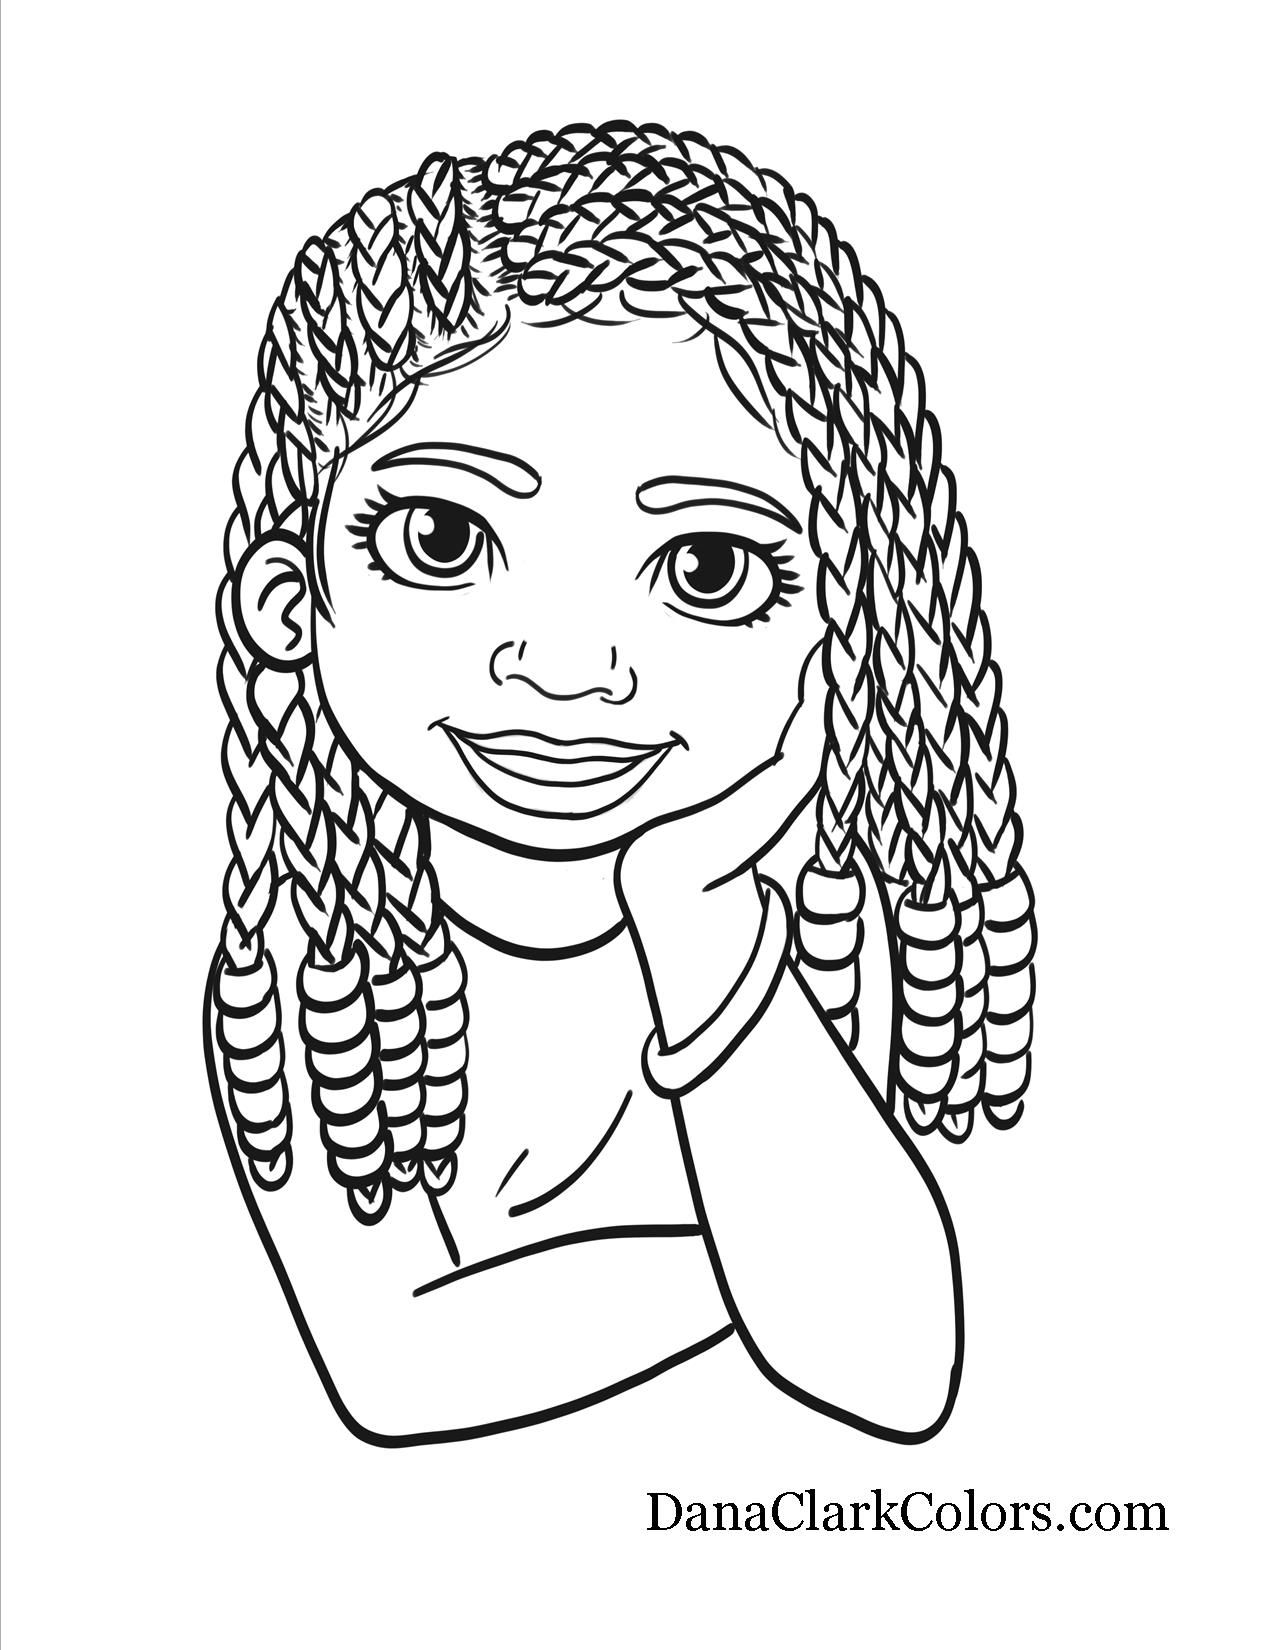 Free Coloring Pages - DanaClarkColors.com  People coloring pages